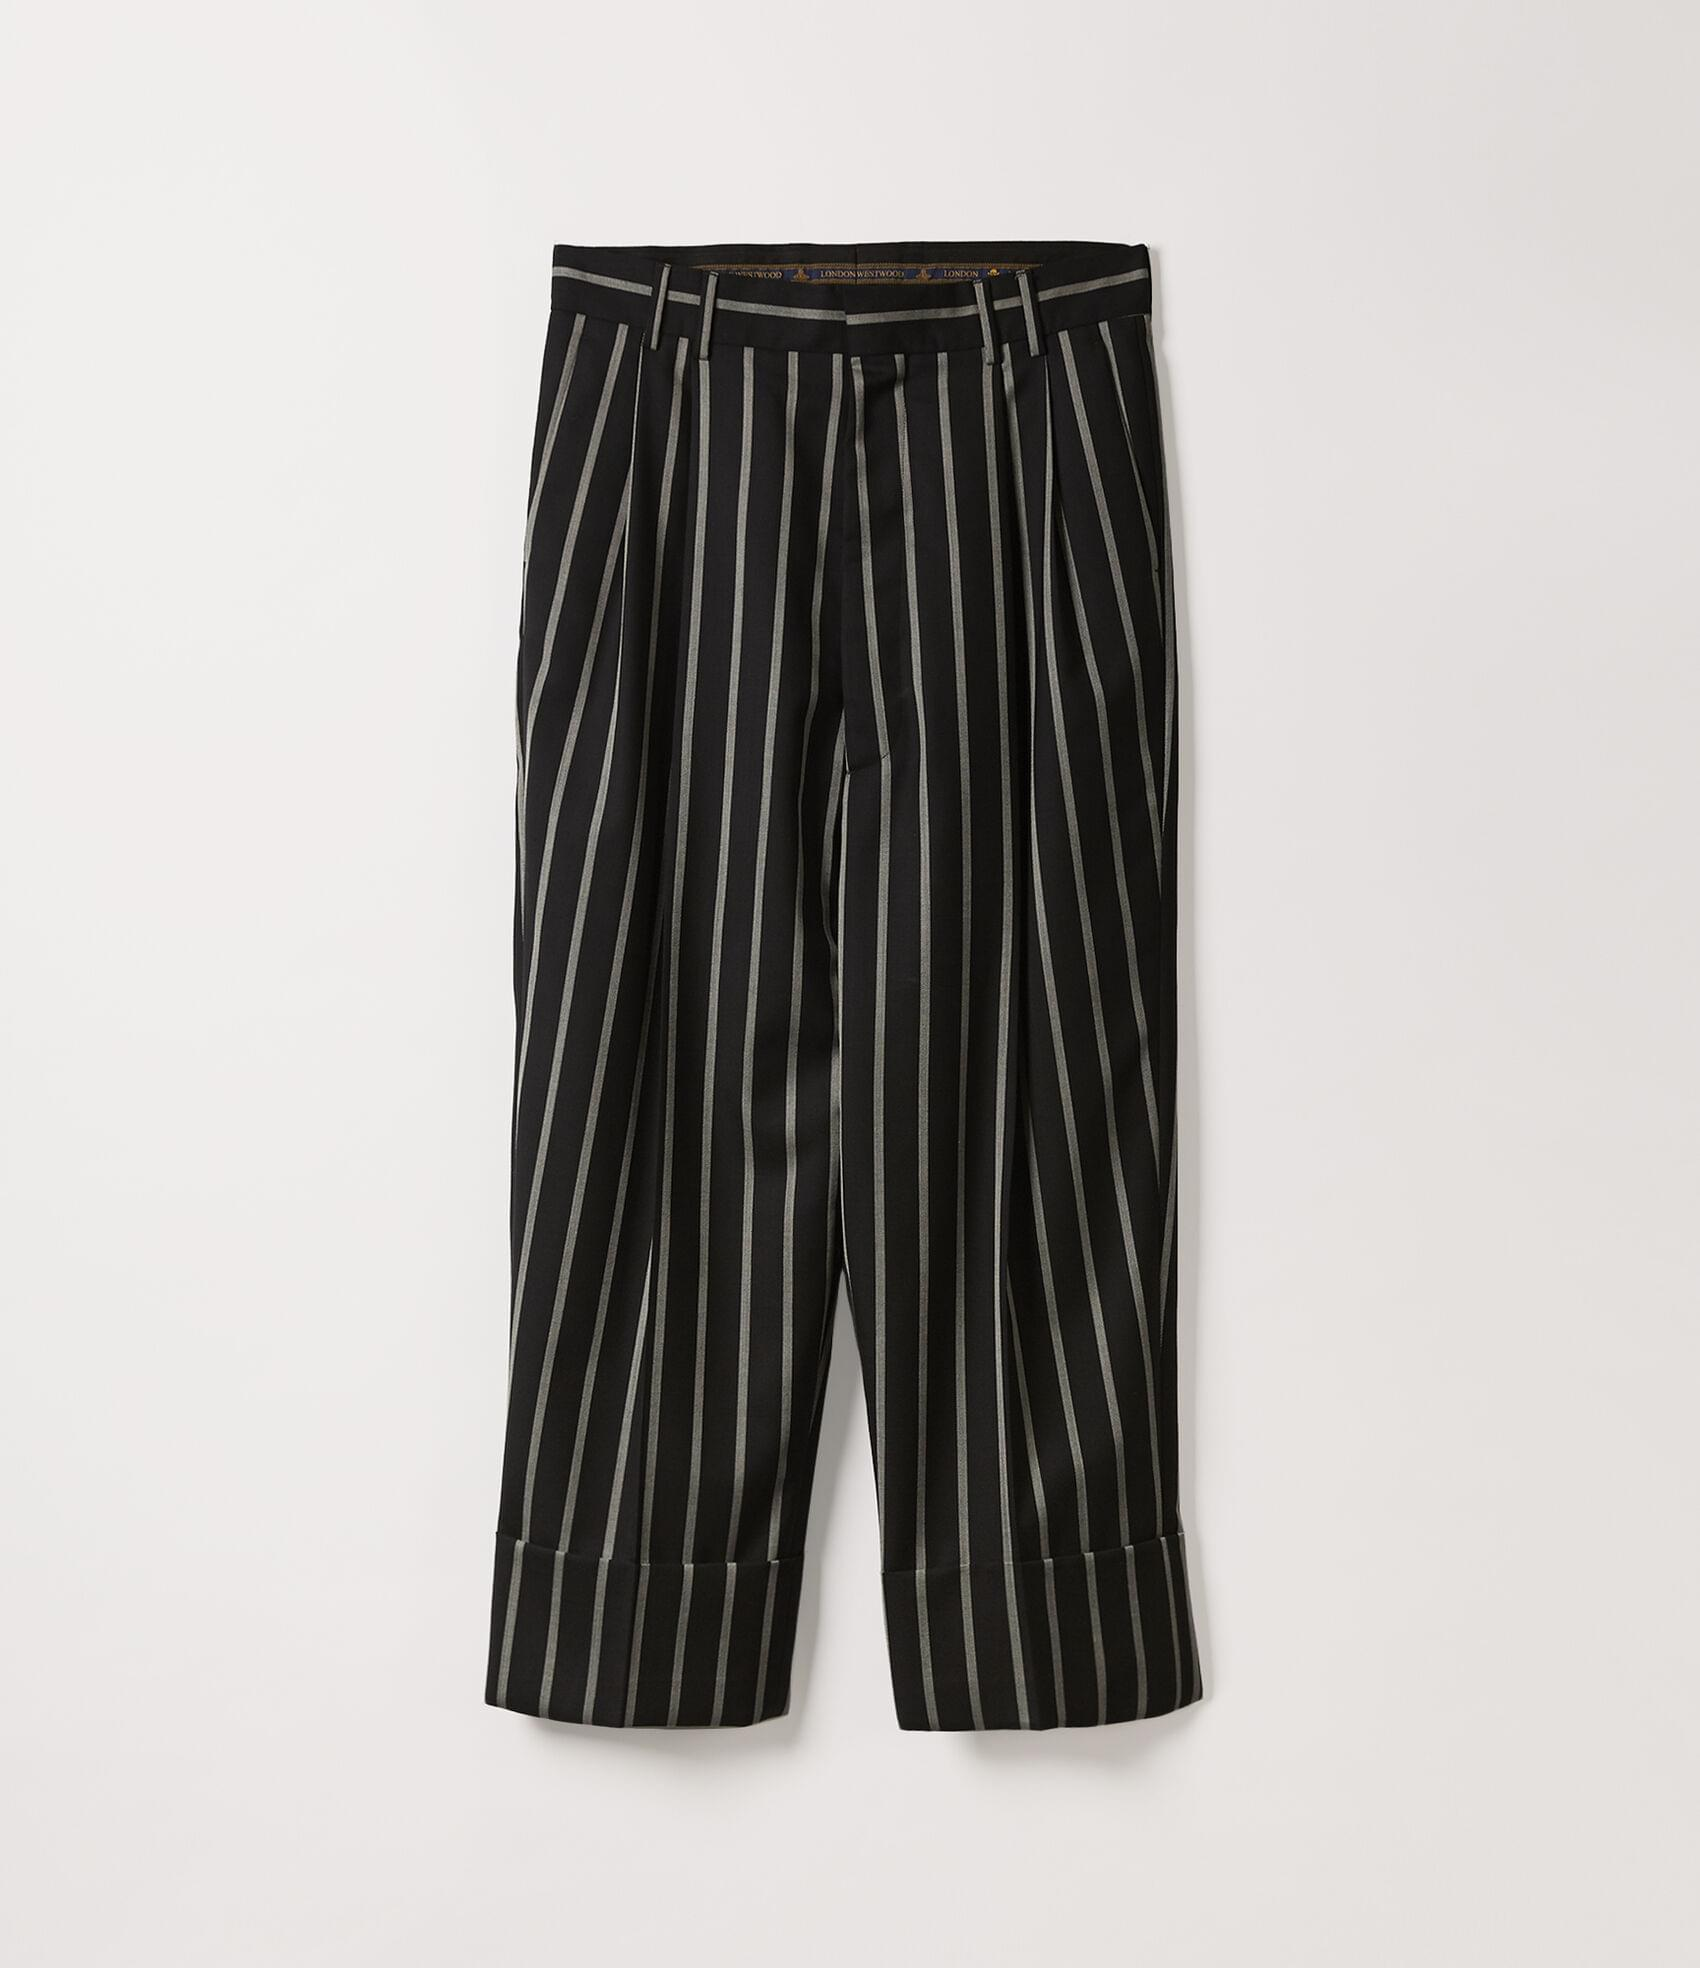 Vivienne Westwood GABLE TROUSERS BLACK/WHITE STRIPES